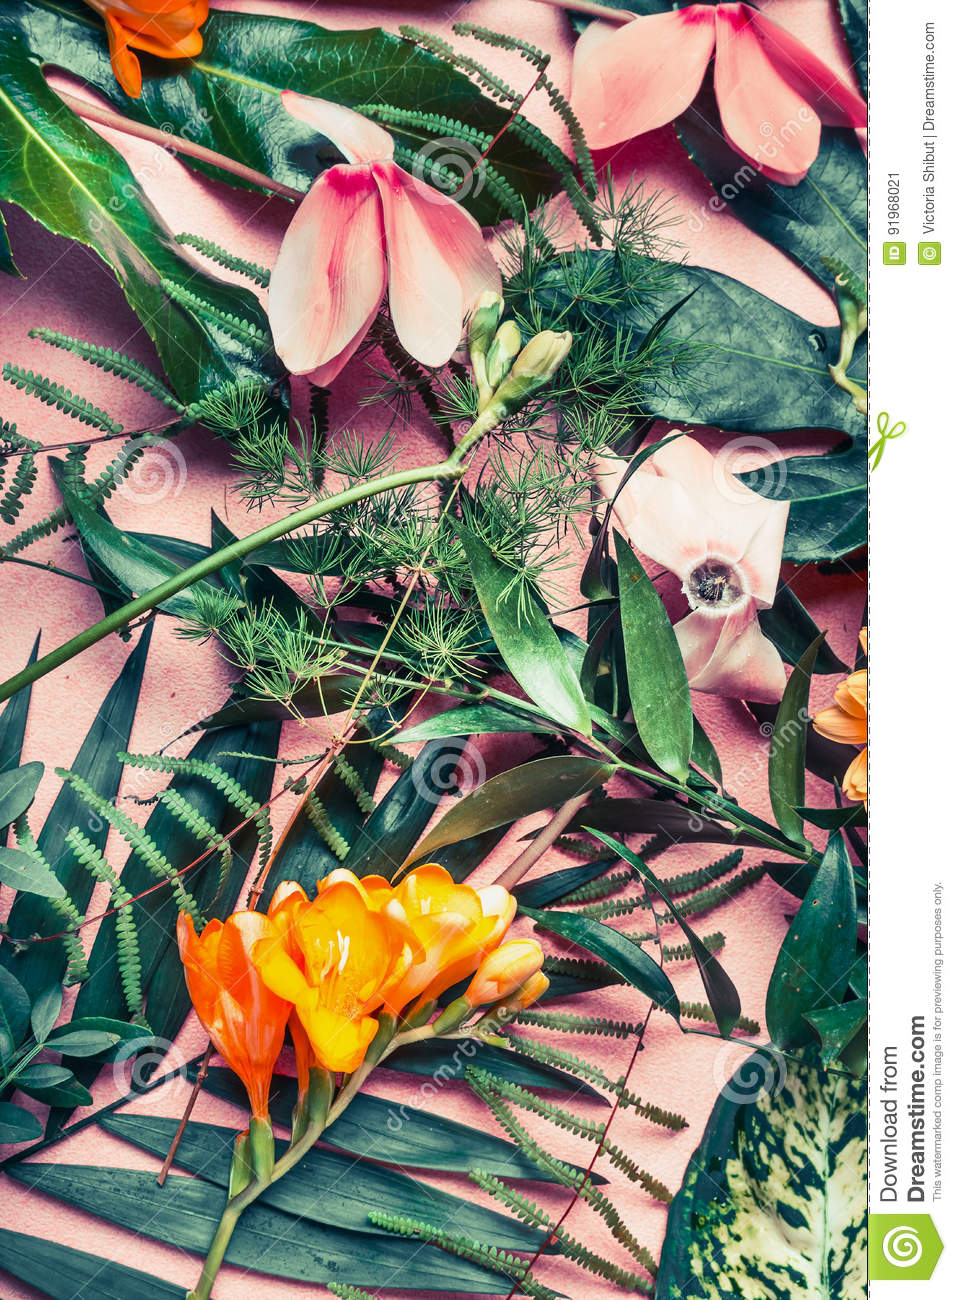 Hd Fall Wallpapers Phone Various Green Tropical Leaves And Exotic Flowers Nature